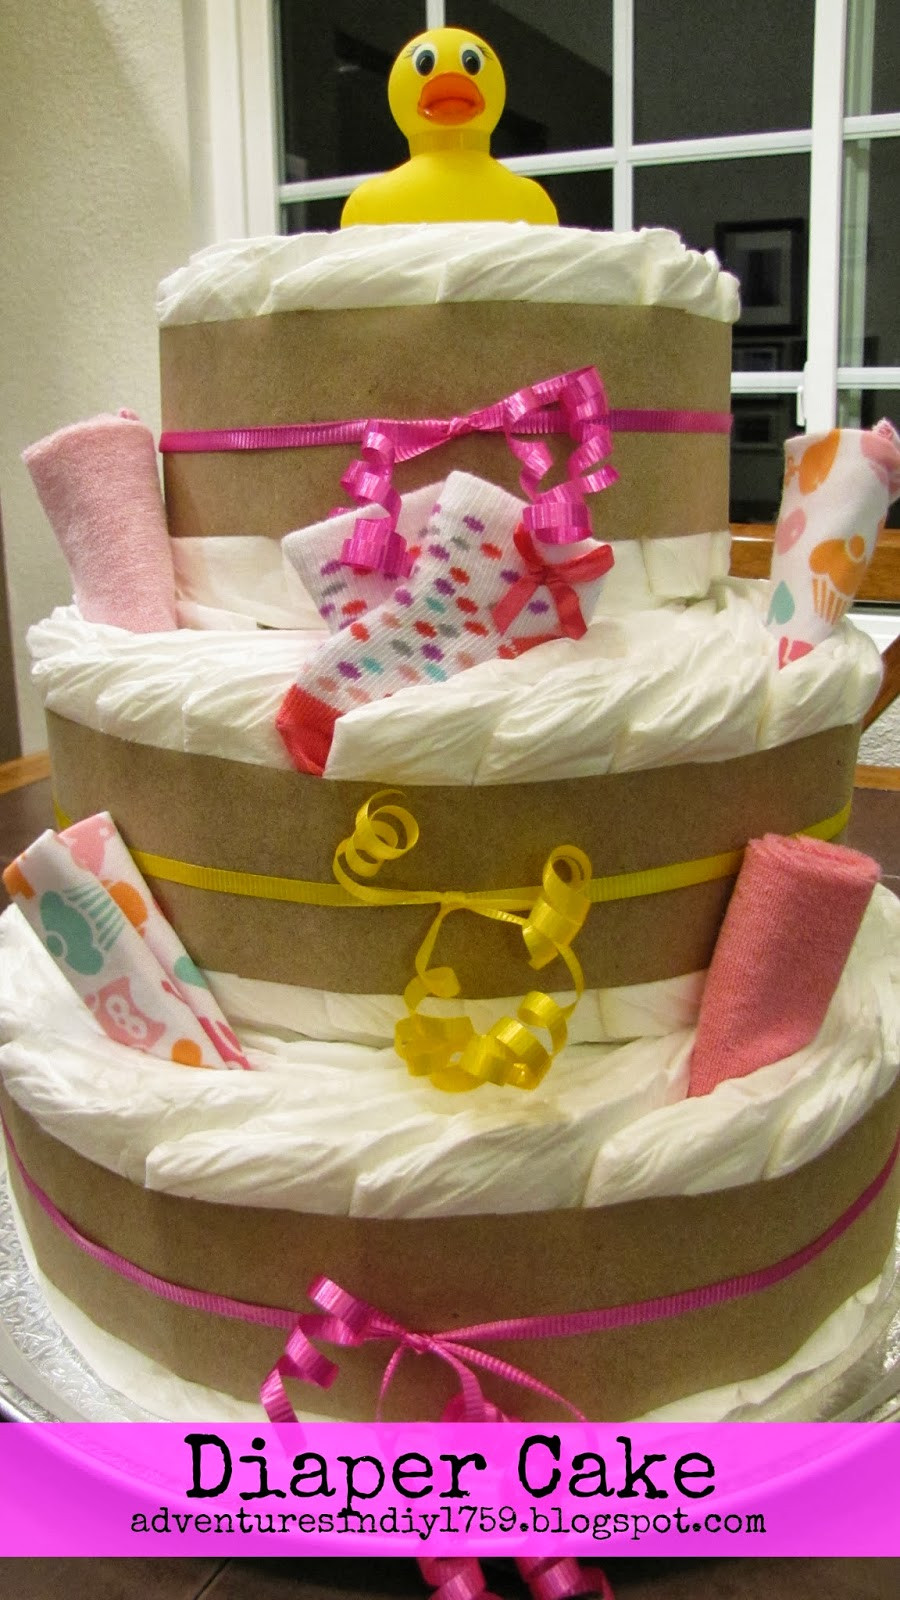 Best ideas about DIY Baby Diaper Cake . Save or Pin Adventures in DIY Baby Shower Diaper Cake Now.